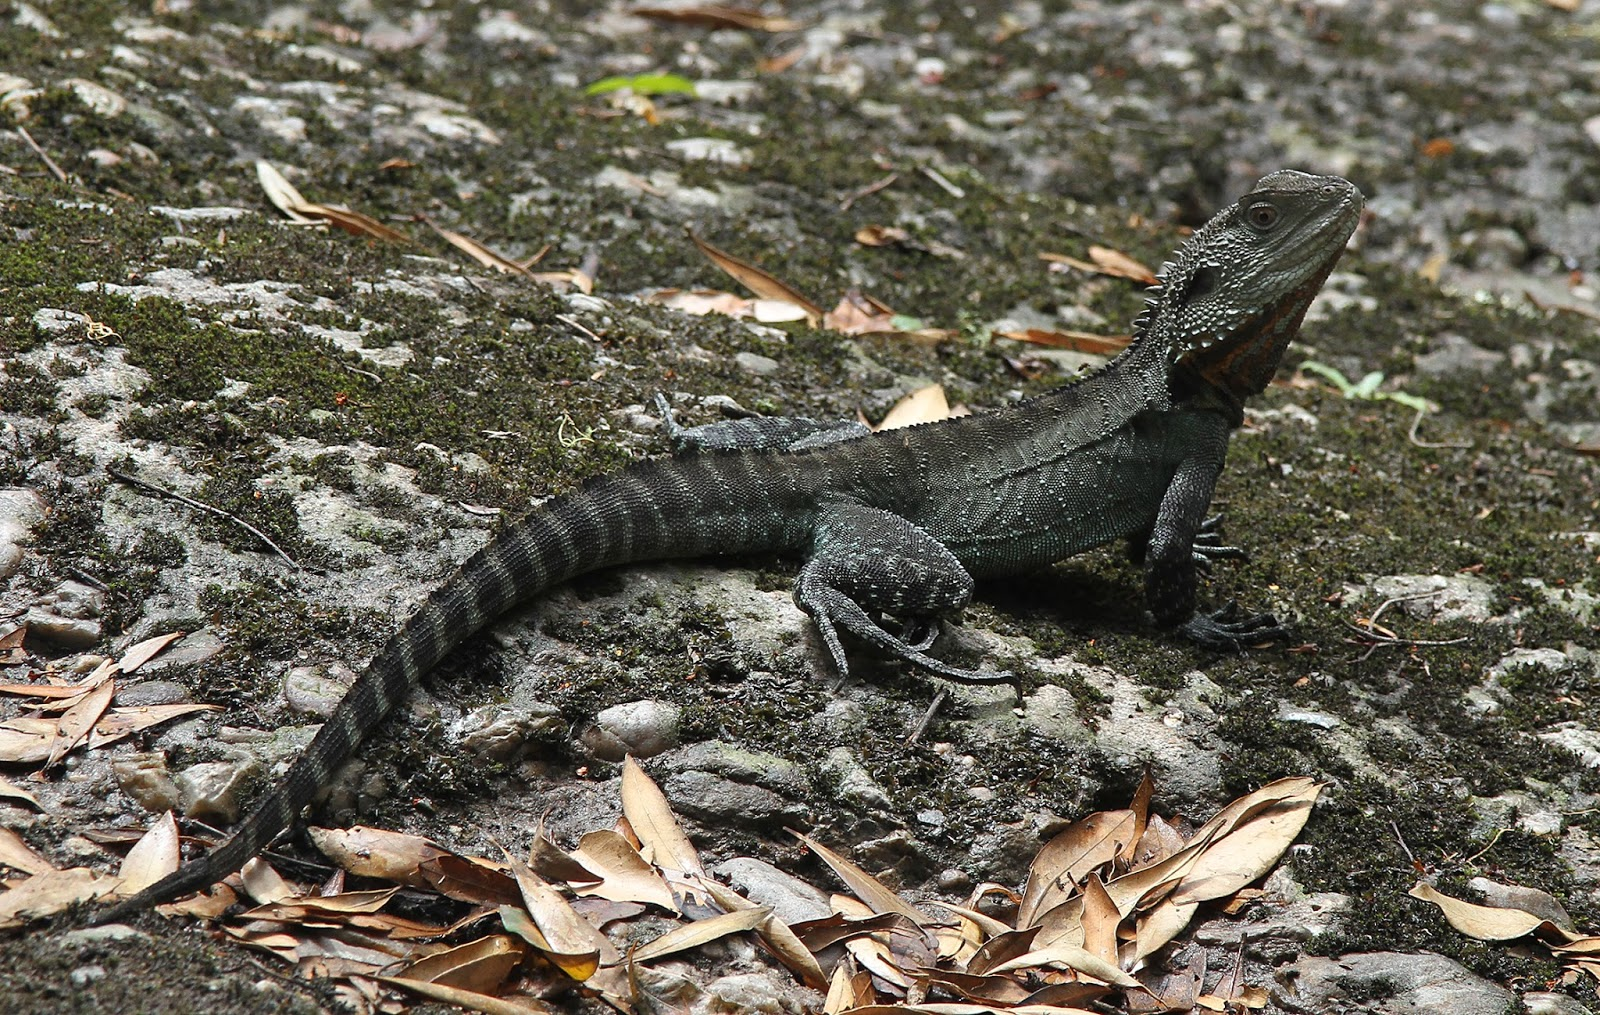 Reptiles: Aust Gippsland Water Dragon, Physignathus lesueurii howittii